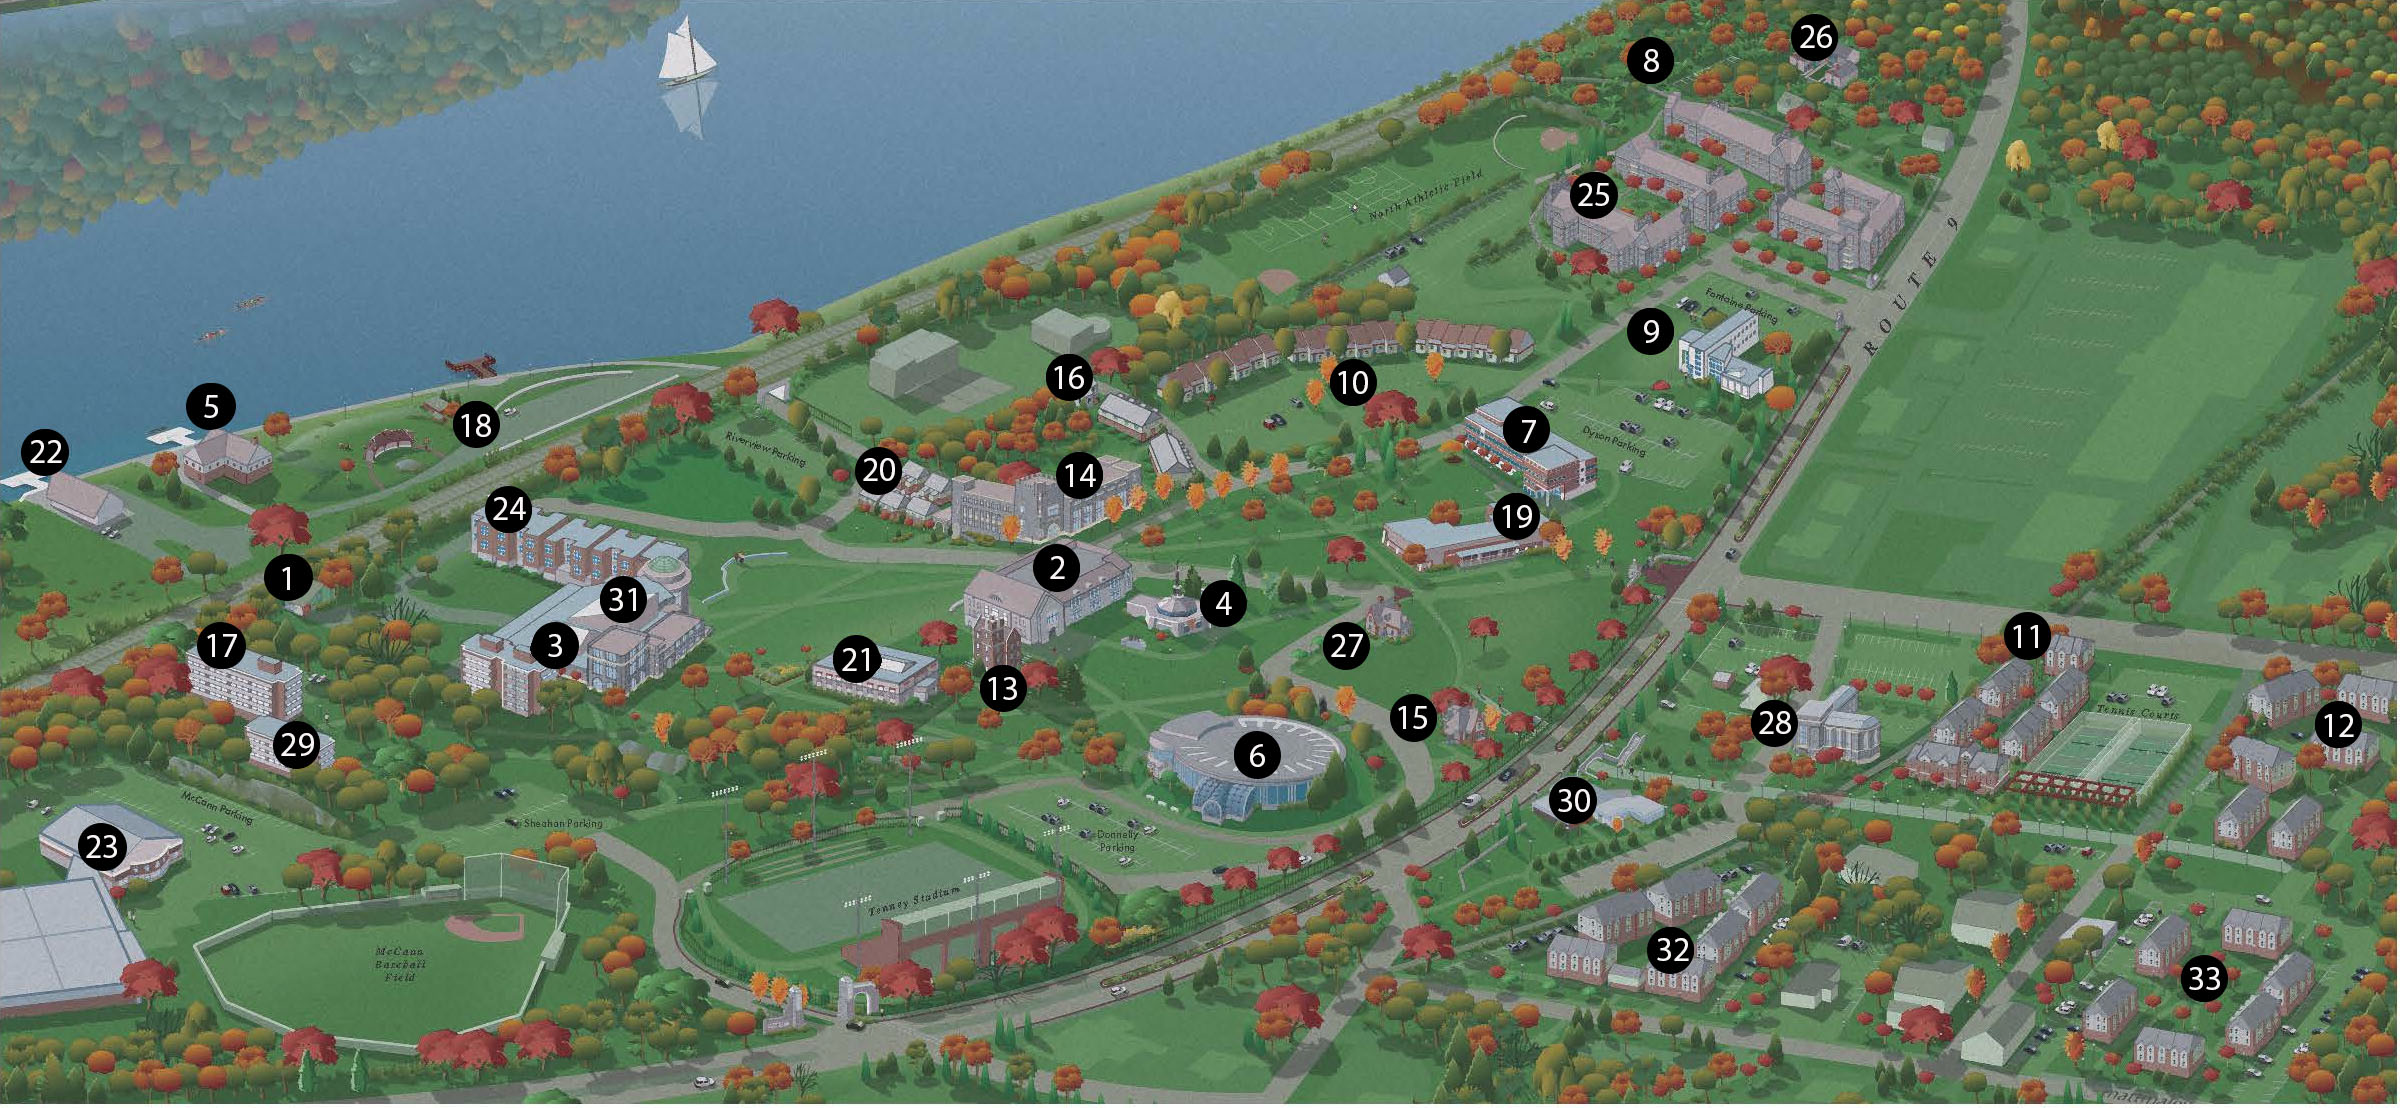 Marist Campus Map About | Campus Map   Marist College